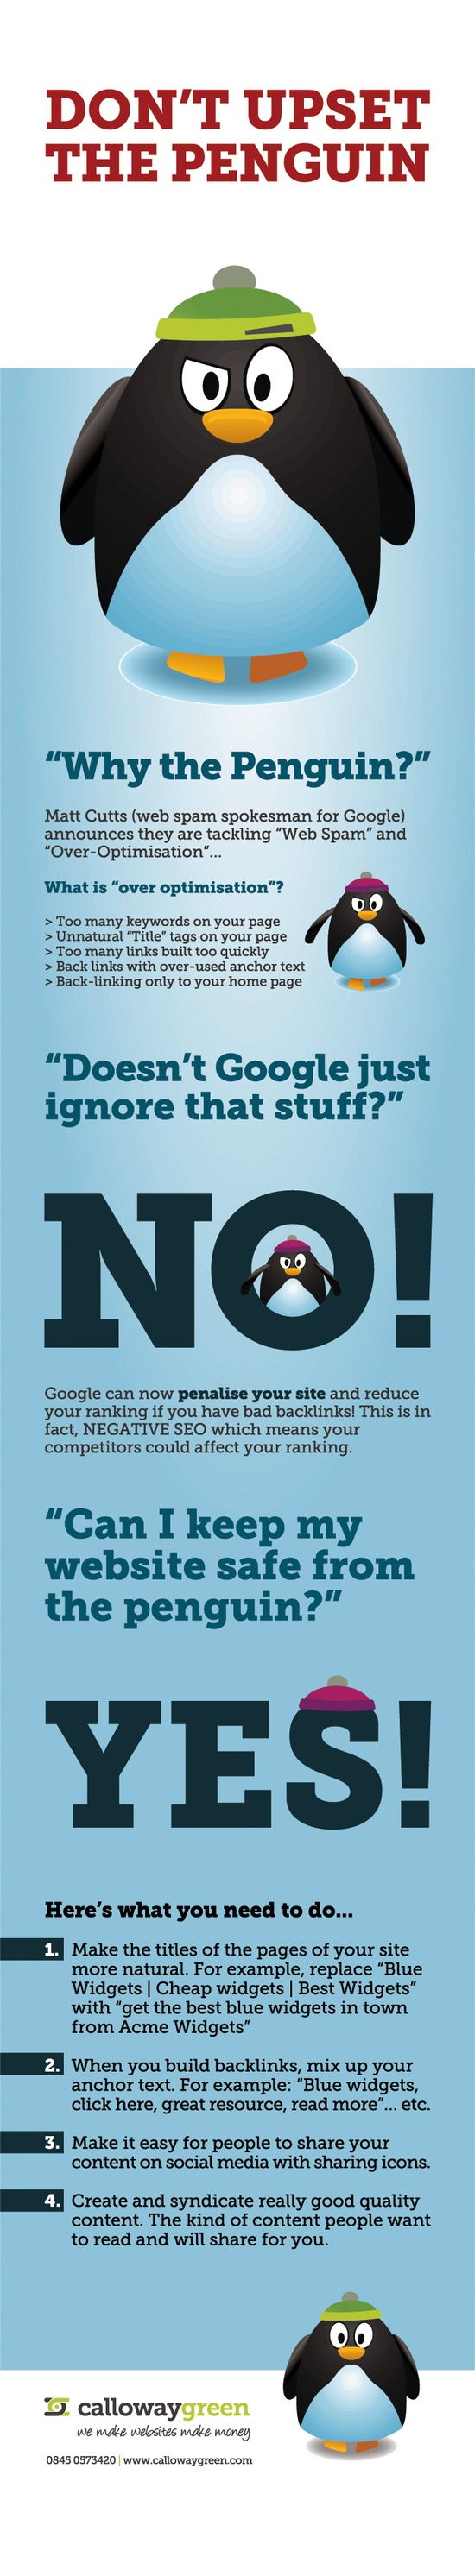 dont upset the penguin